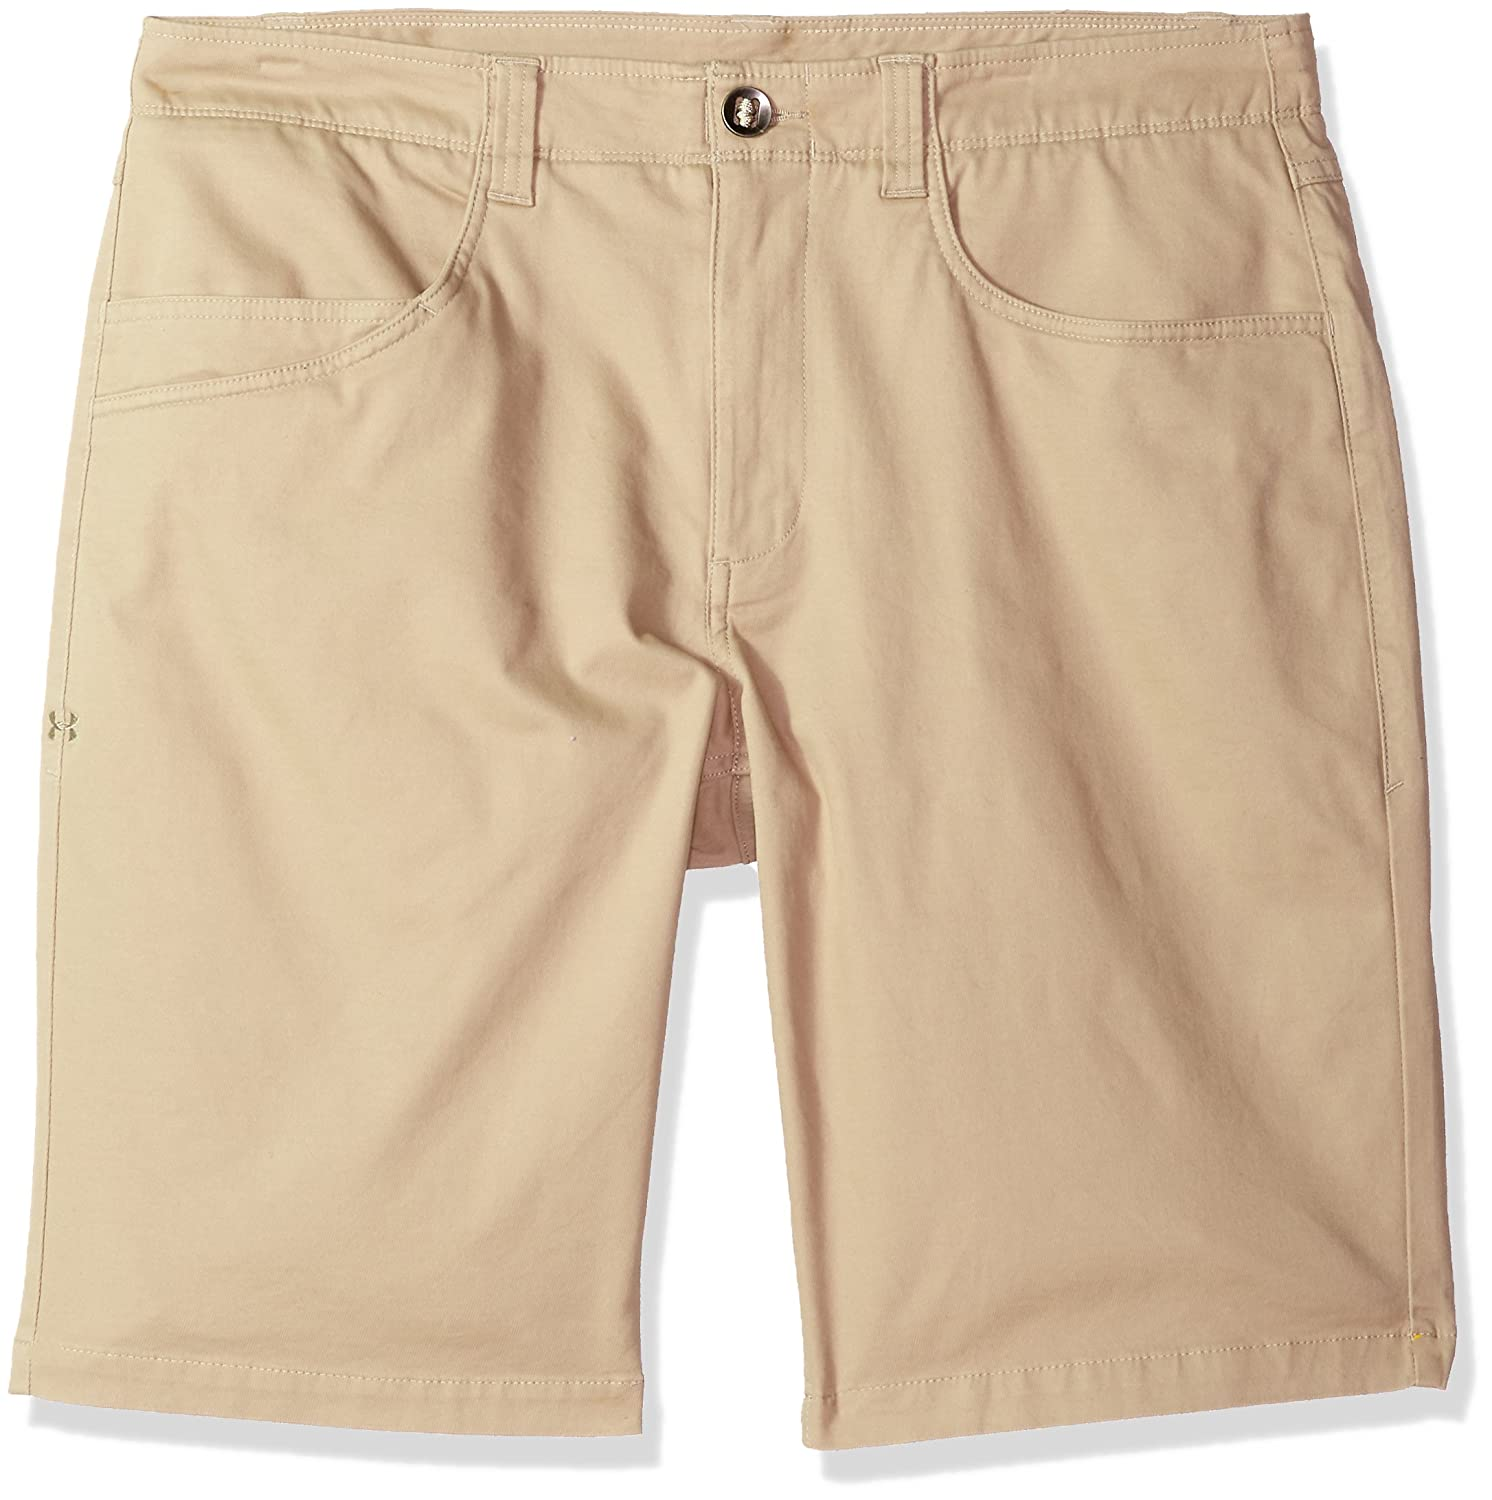 Under Armour Men's Payload Shorts Under Armour Apparel 1321235